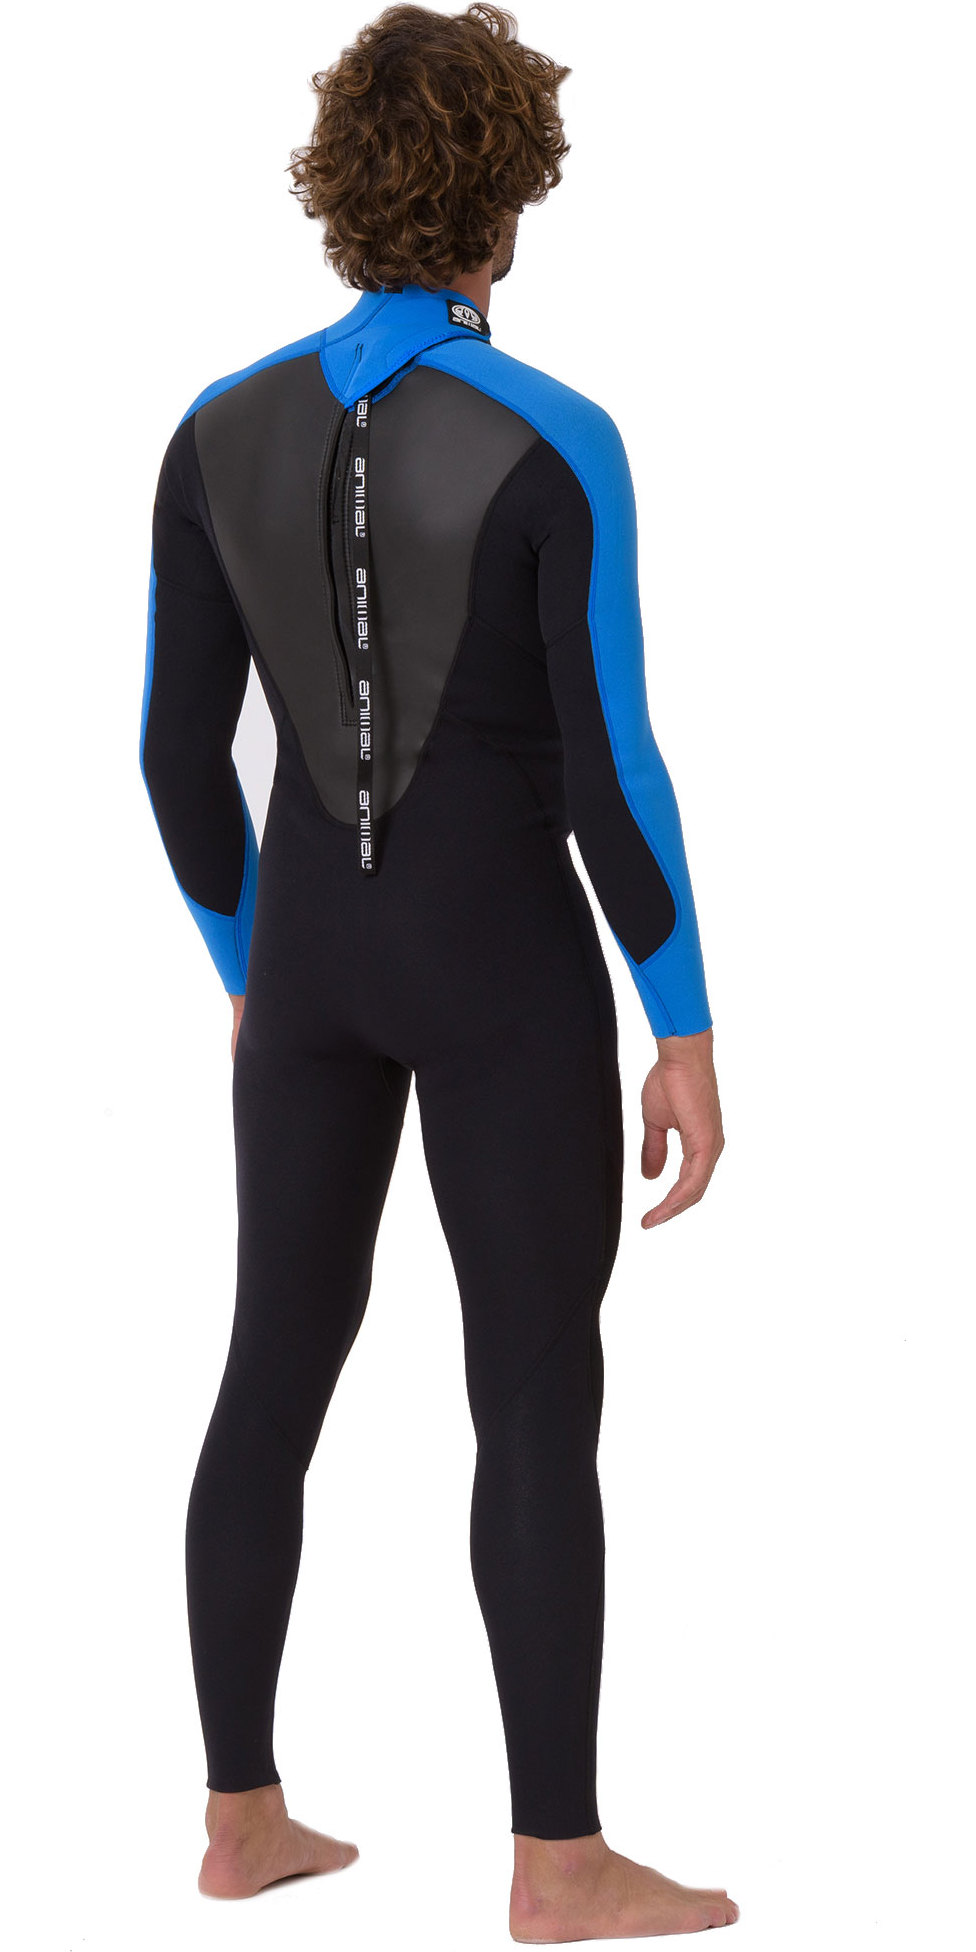 2019 Animal Mens Nova 3/2mm Flatlock Back Zip Wetsuit Black AW9SQ008